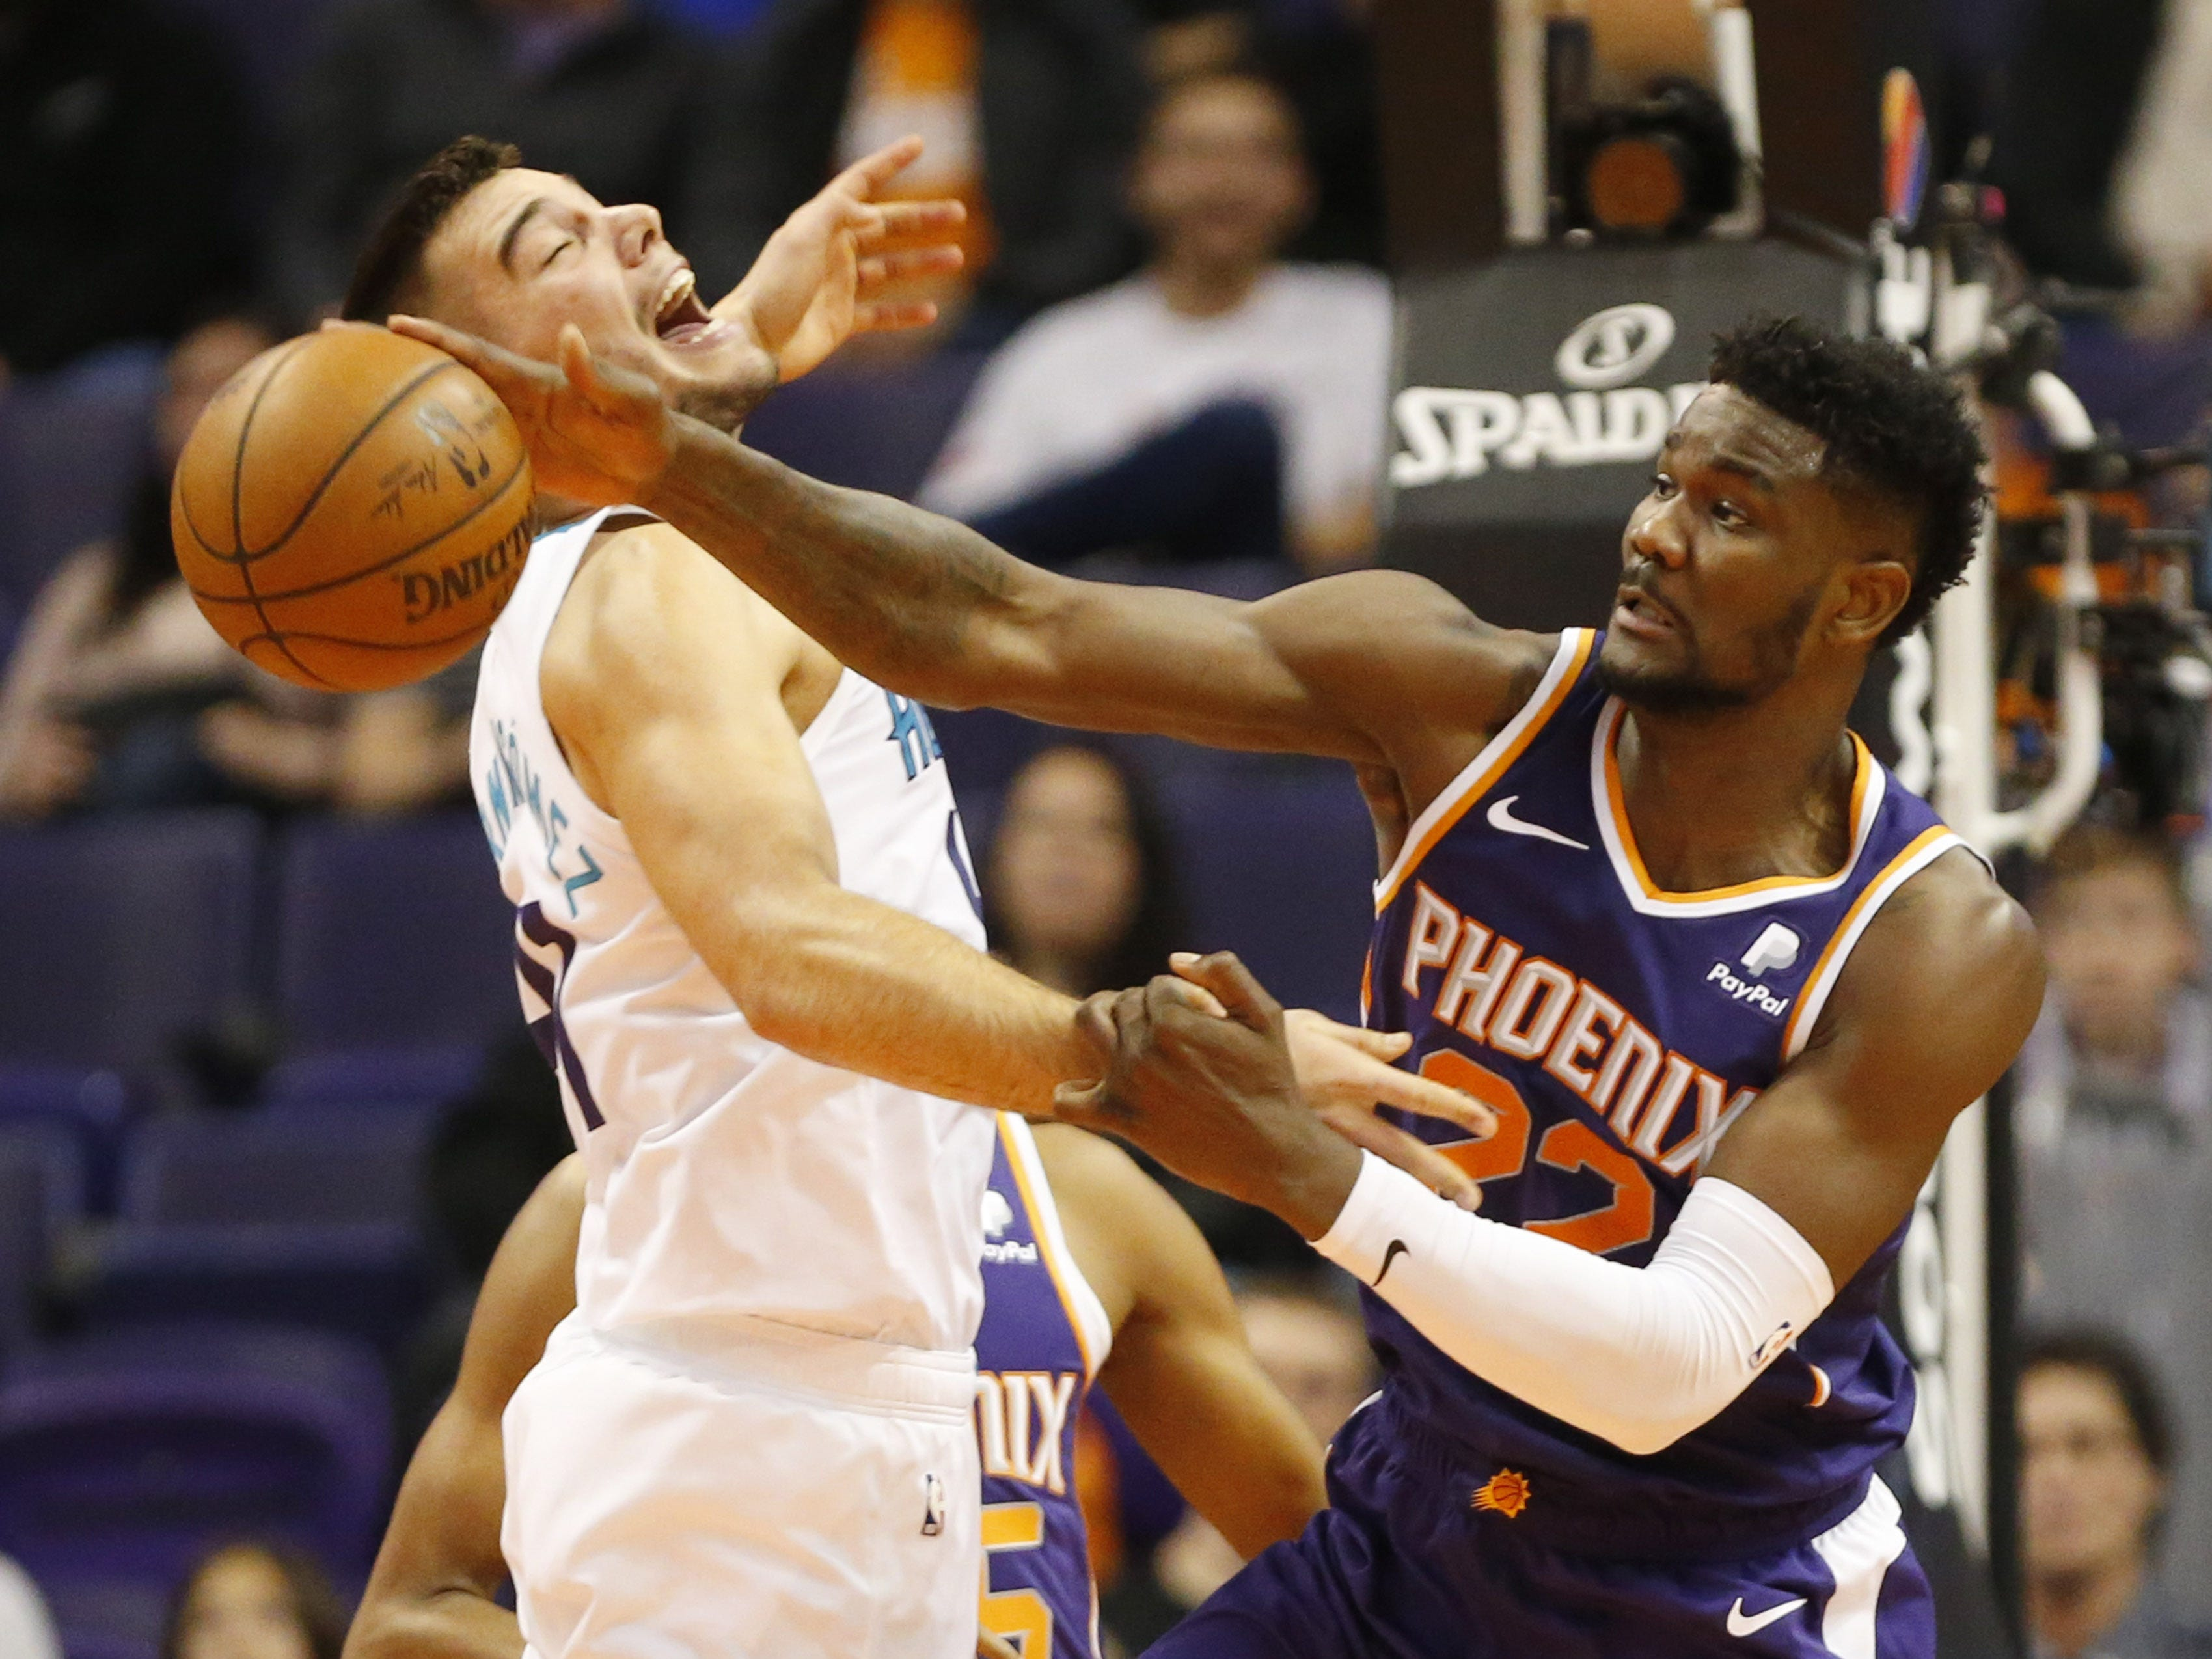 Phoenix Suns center Deandre Ayton (22) grabs a rebounds from Charlotte Hornets center Willy Hernangomez (41) during the second quarter in Phoenix January 6, 2019.